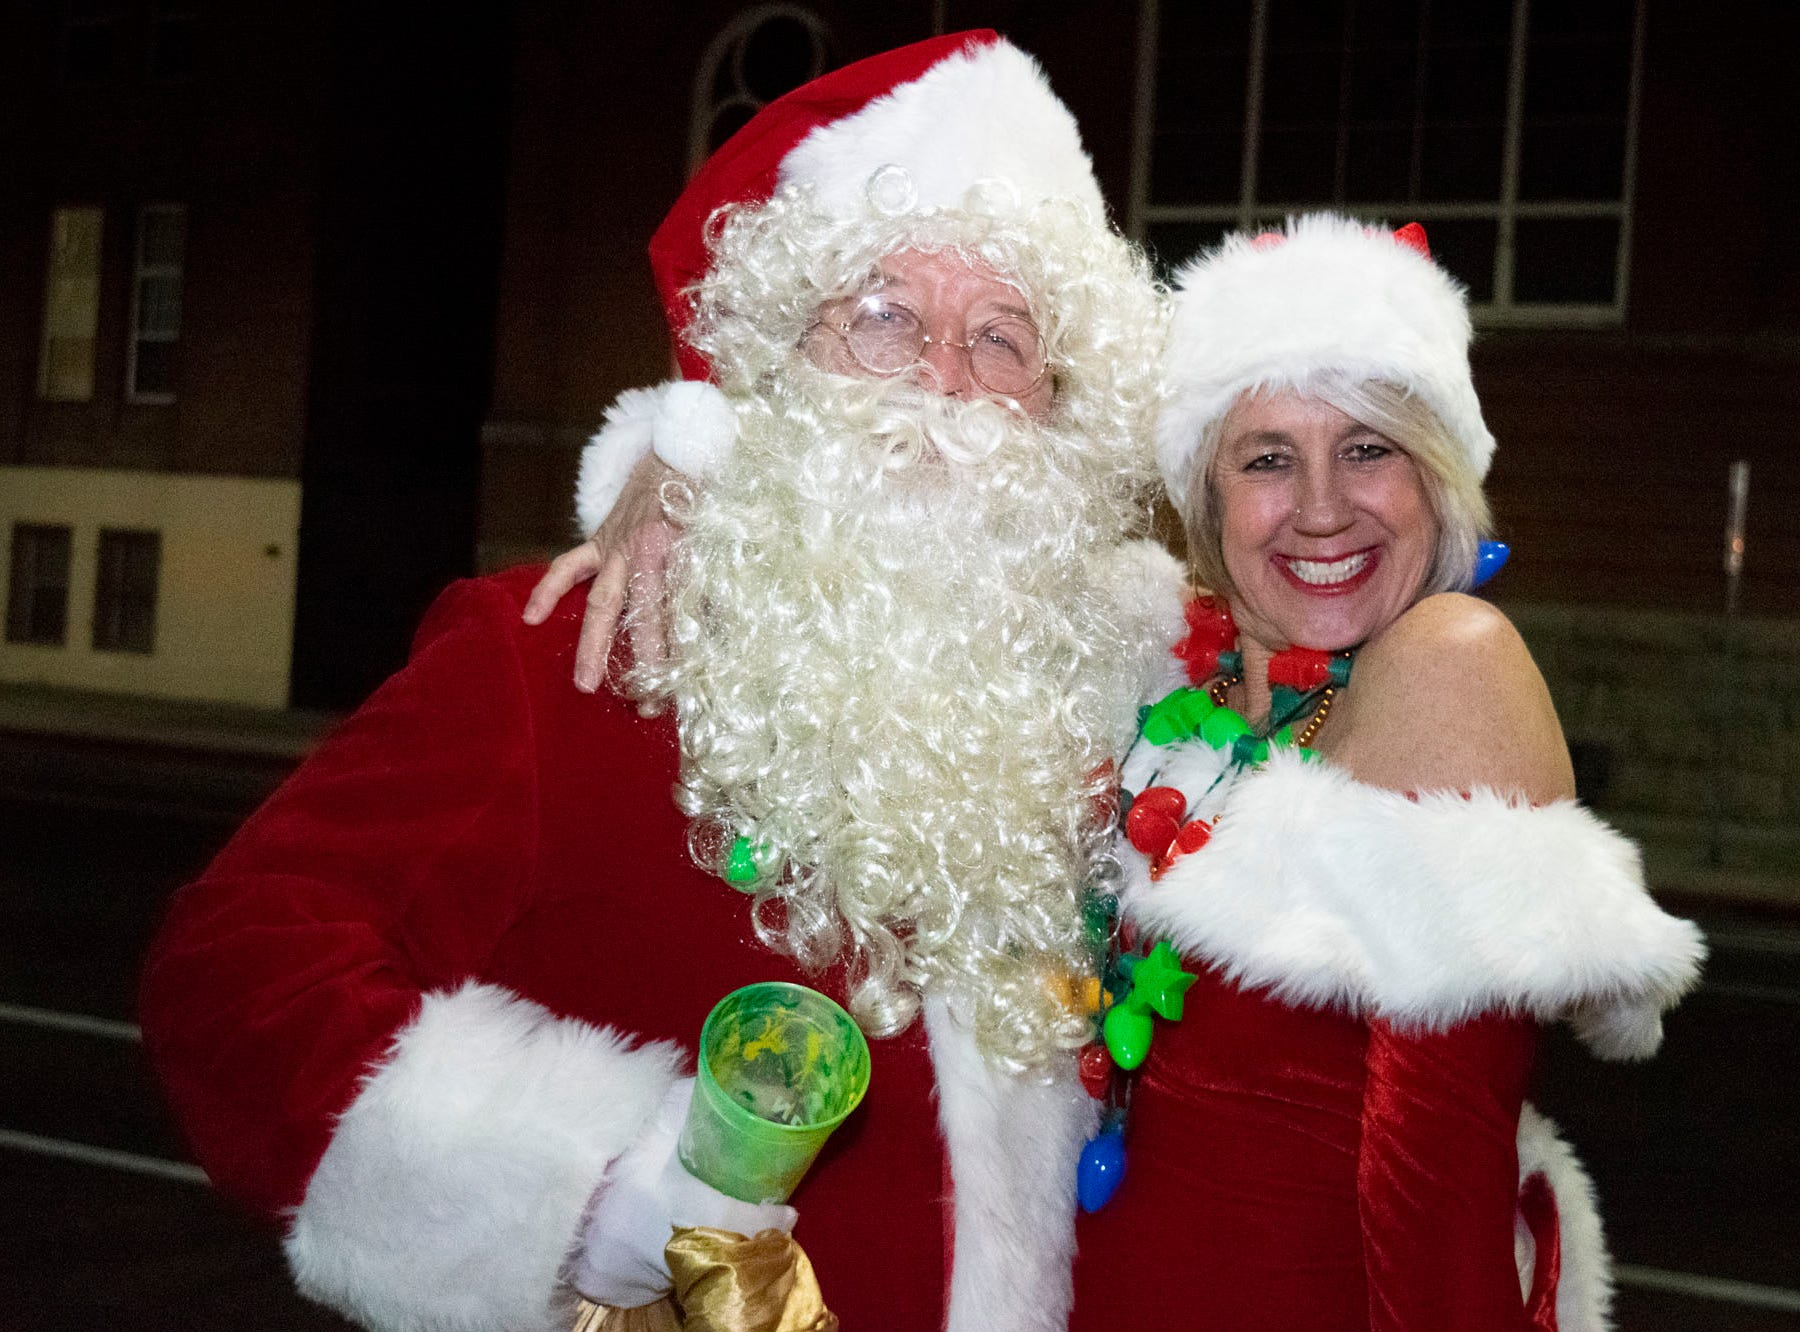 Doug and Cindy Lewis get merry at the Reno Santa Pub Crawl on Saturday, Dec. 15, 2018.